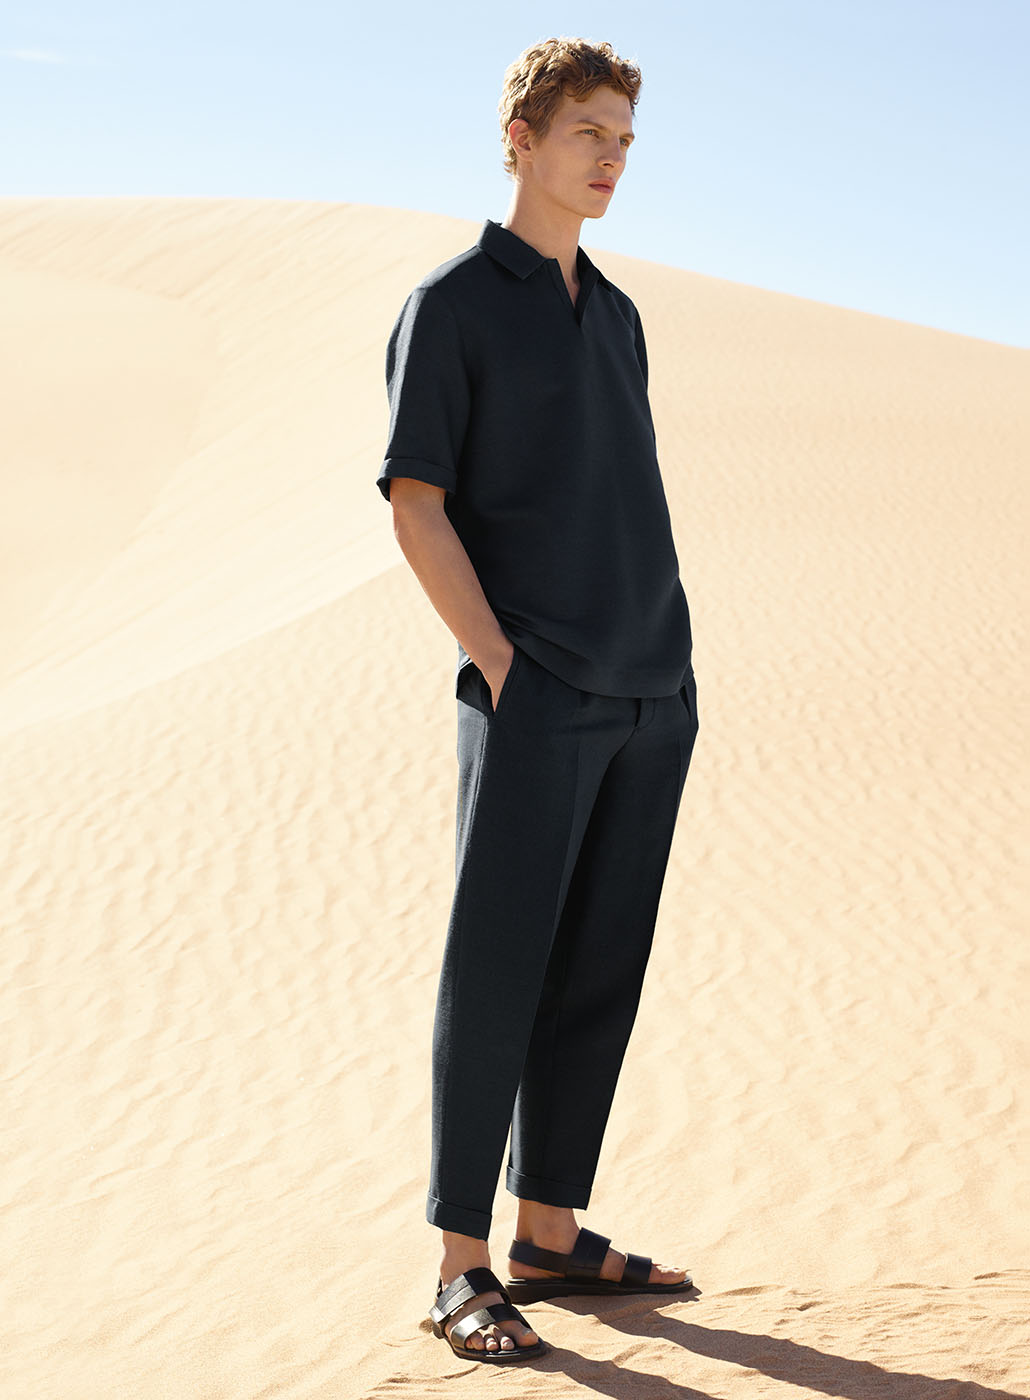 COS summer campaign for men | minimalistic fashion shooting in the desert